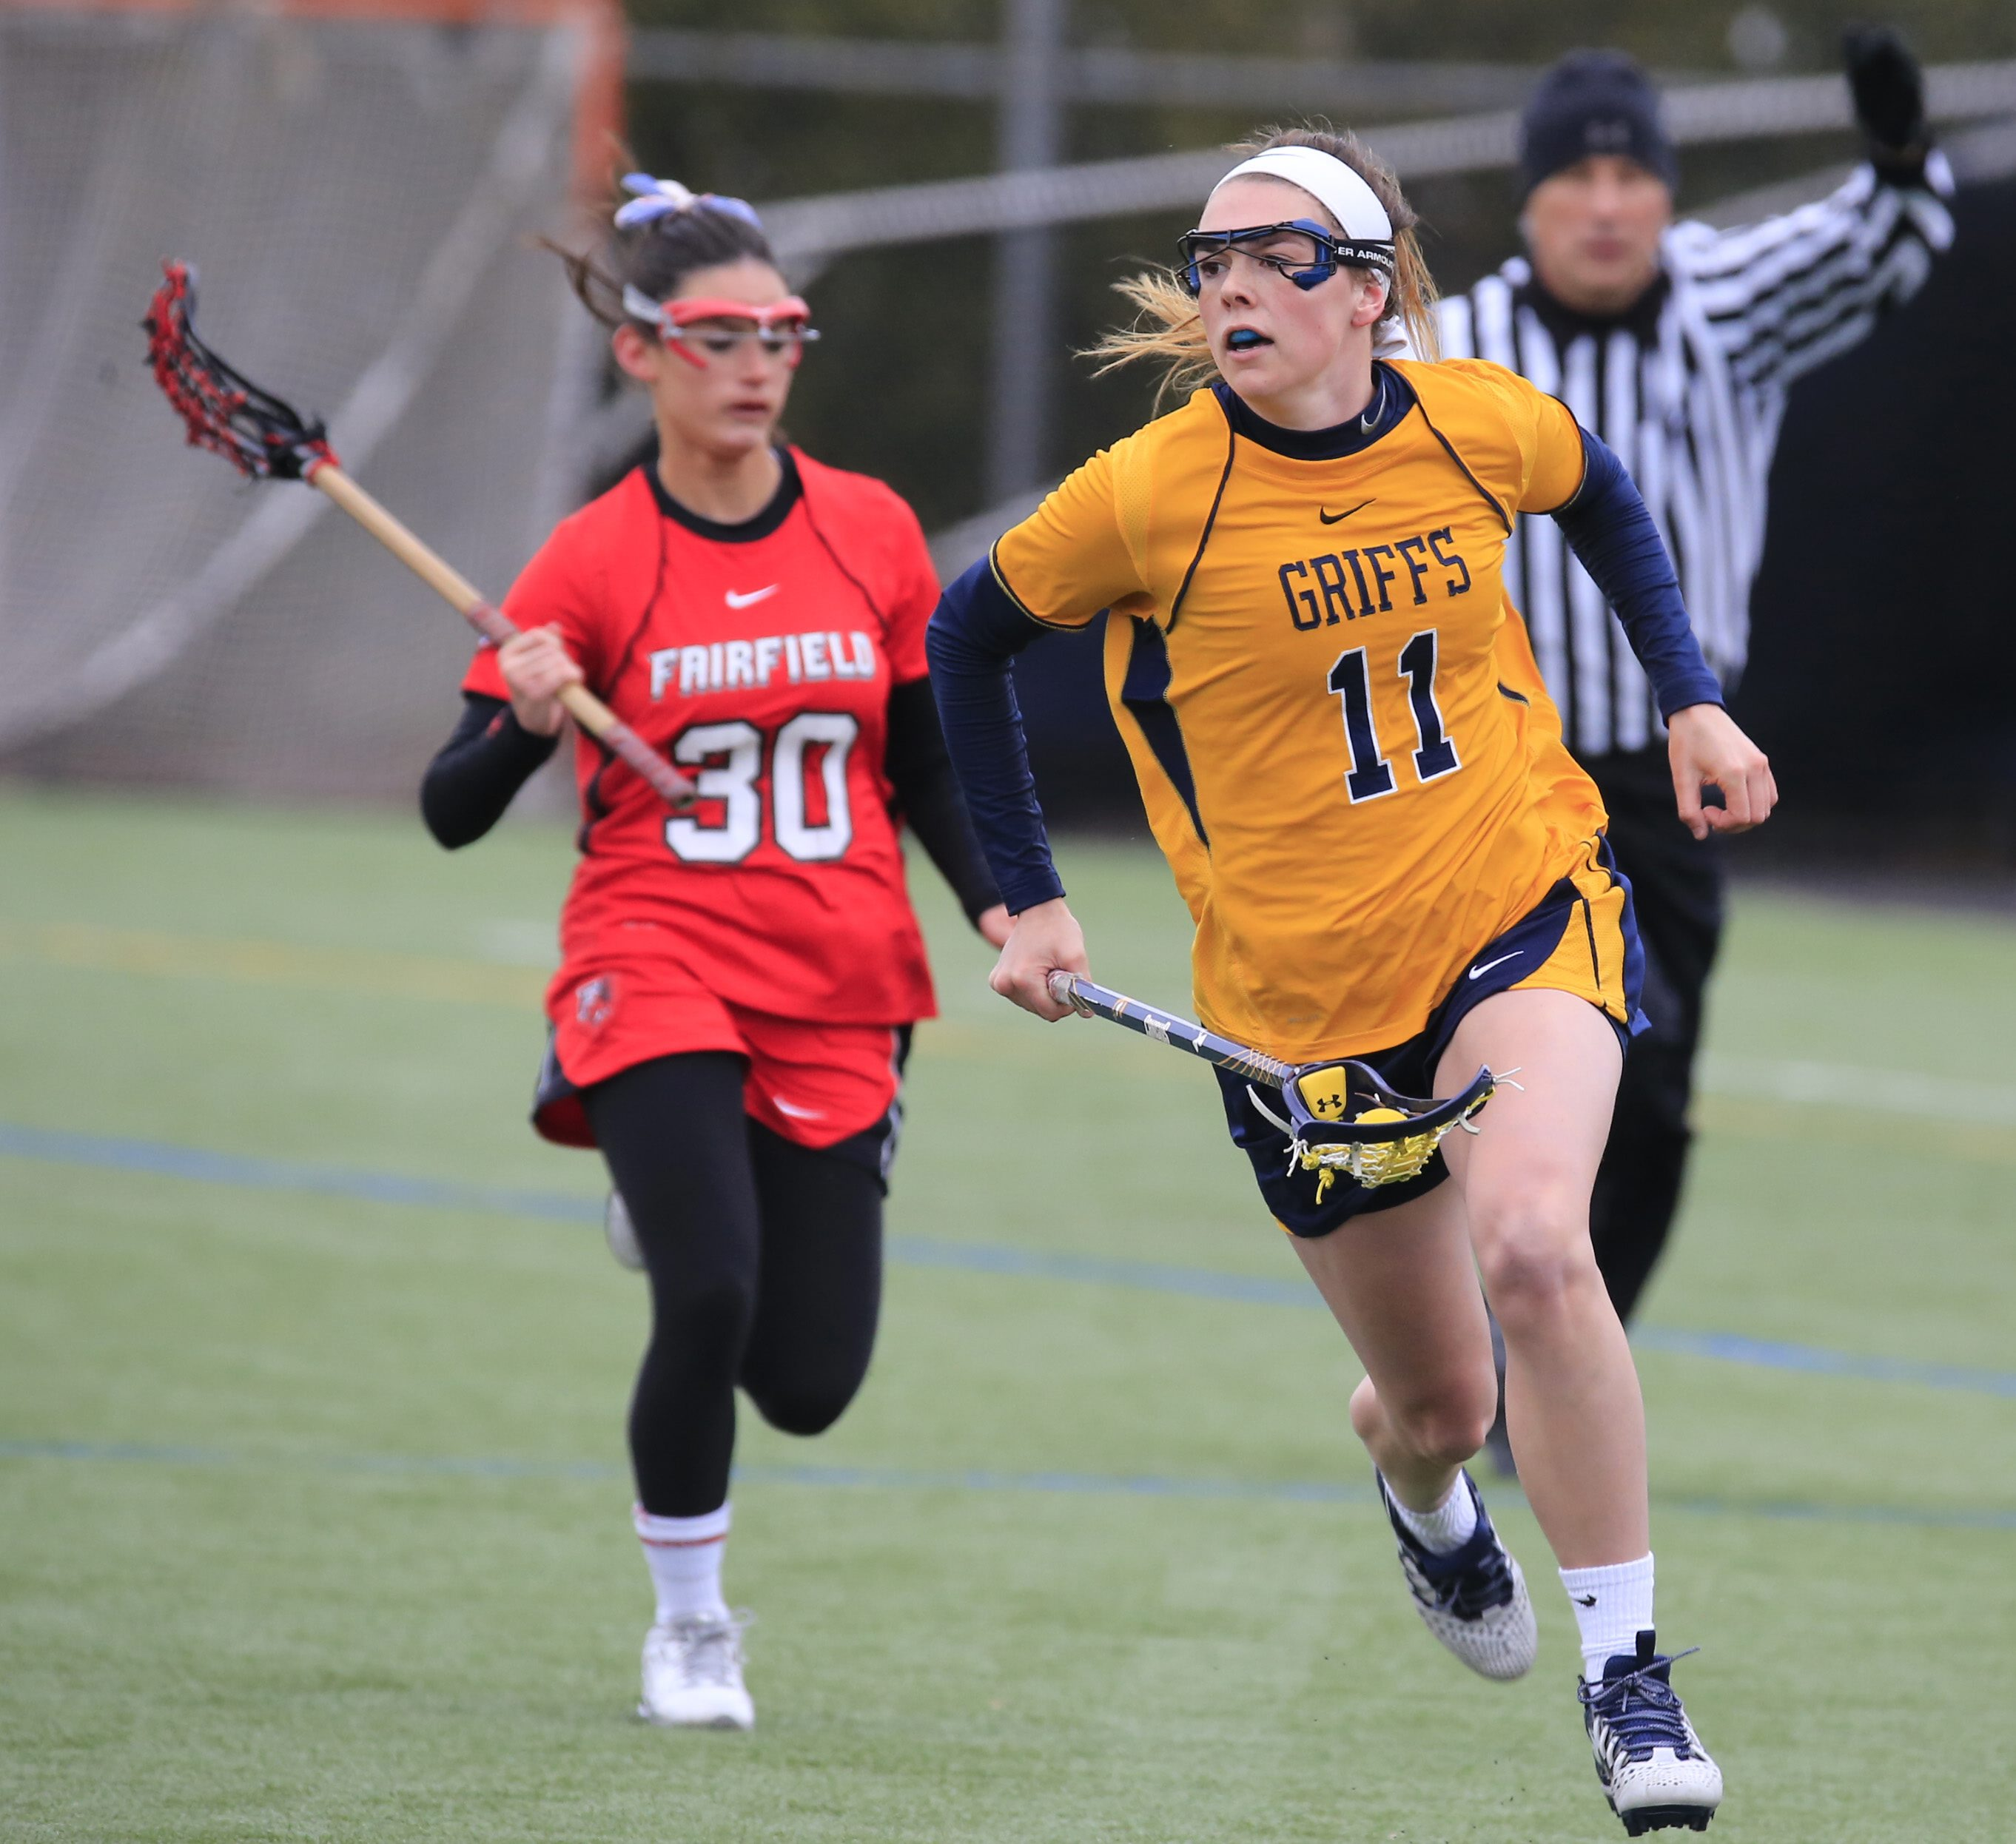 Canisius's Erica Evans, pictured last season, has continued her high-scoring ways. (Harry Scull Jr./Buffalo News)